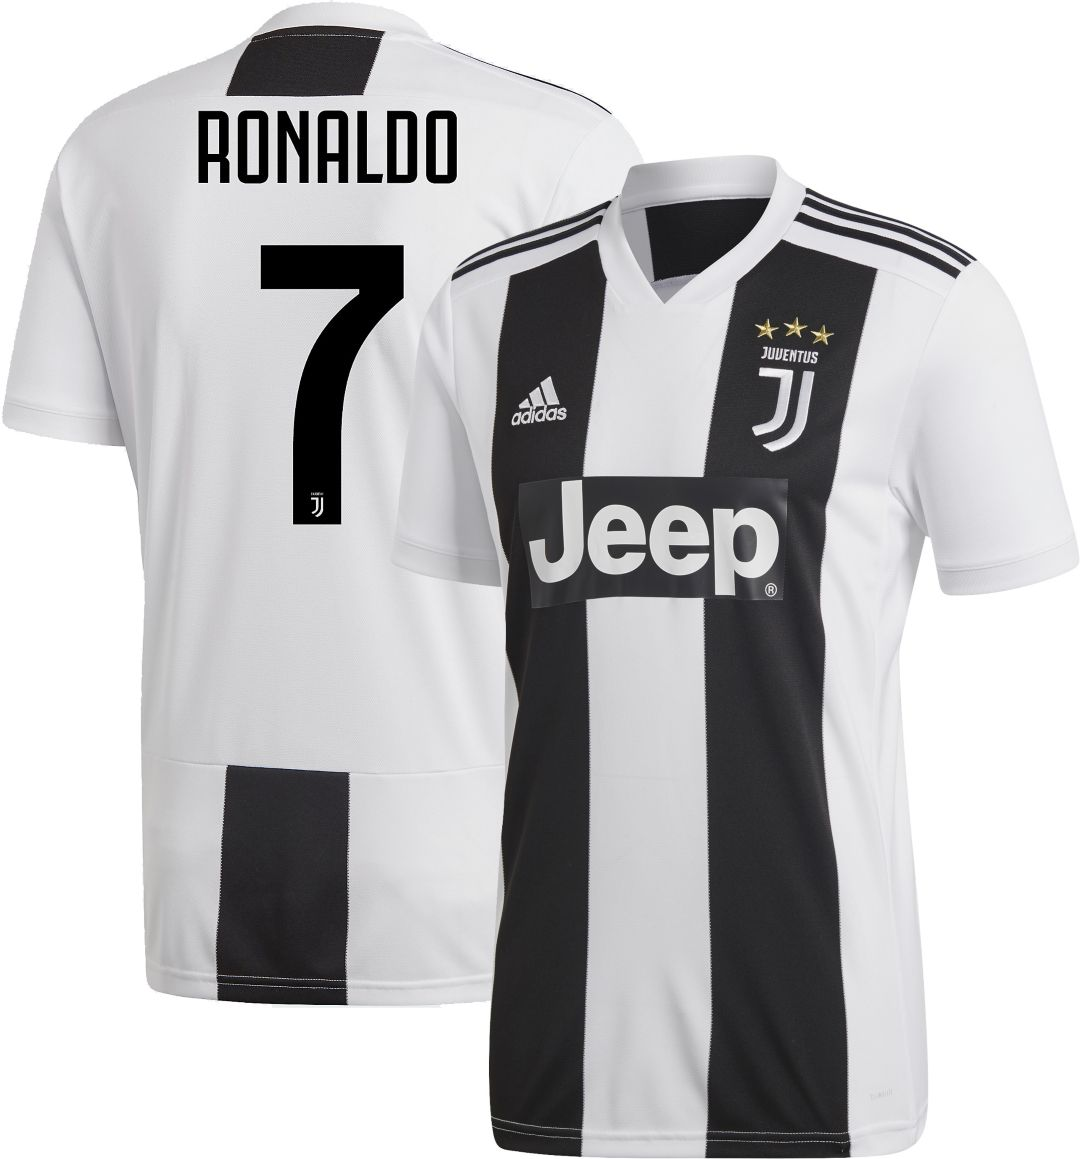 new concept f8c6f 164bb adidas Youth Juventus Stadium Cristiano Ronaldo #7 Home Replica Jersey